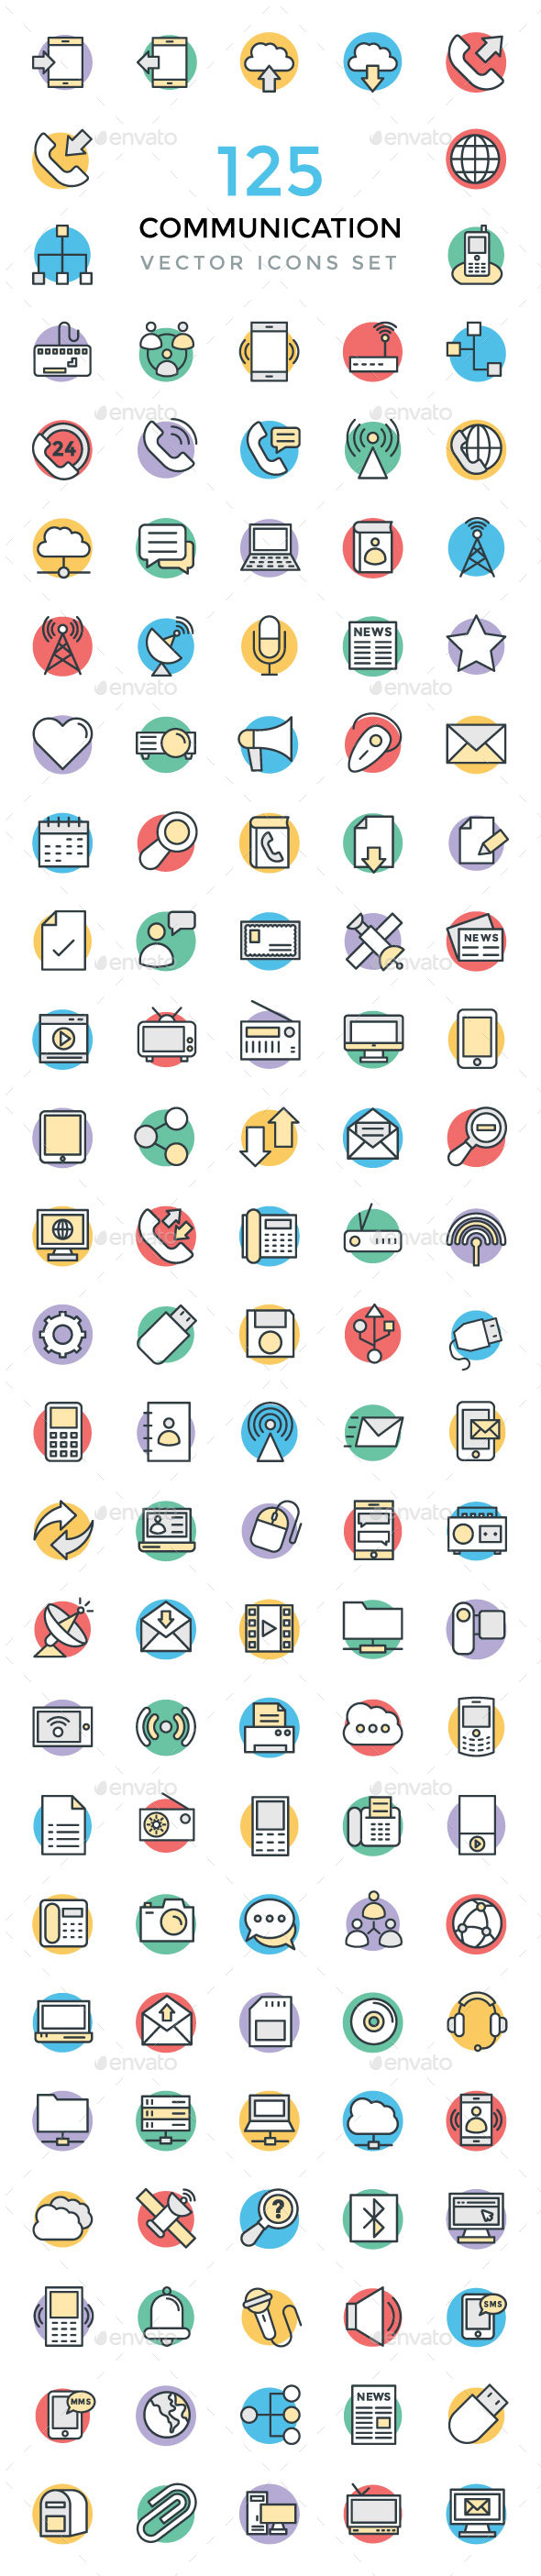 125 Communication Vector Icons - Icons